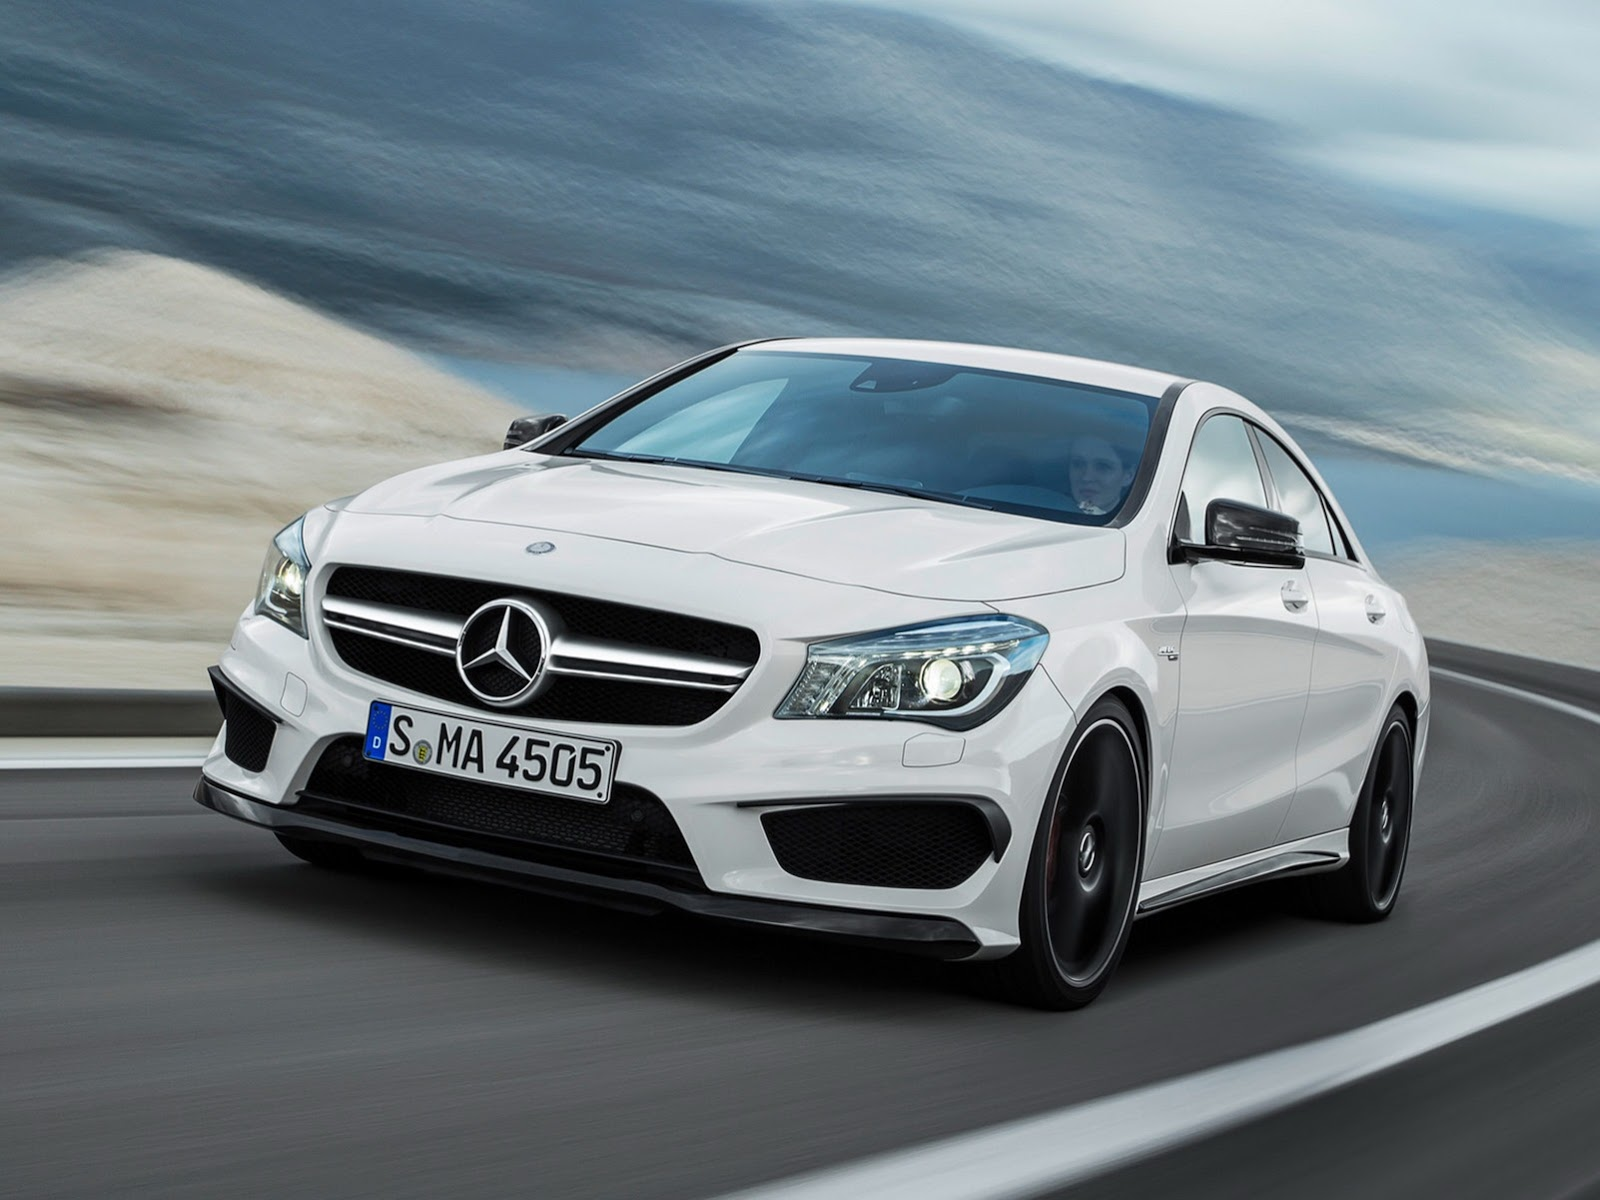 2014 Mercedes CLA 45 AMG First Photos Leaked - autoevolution